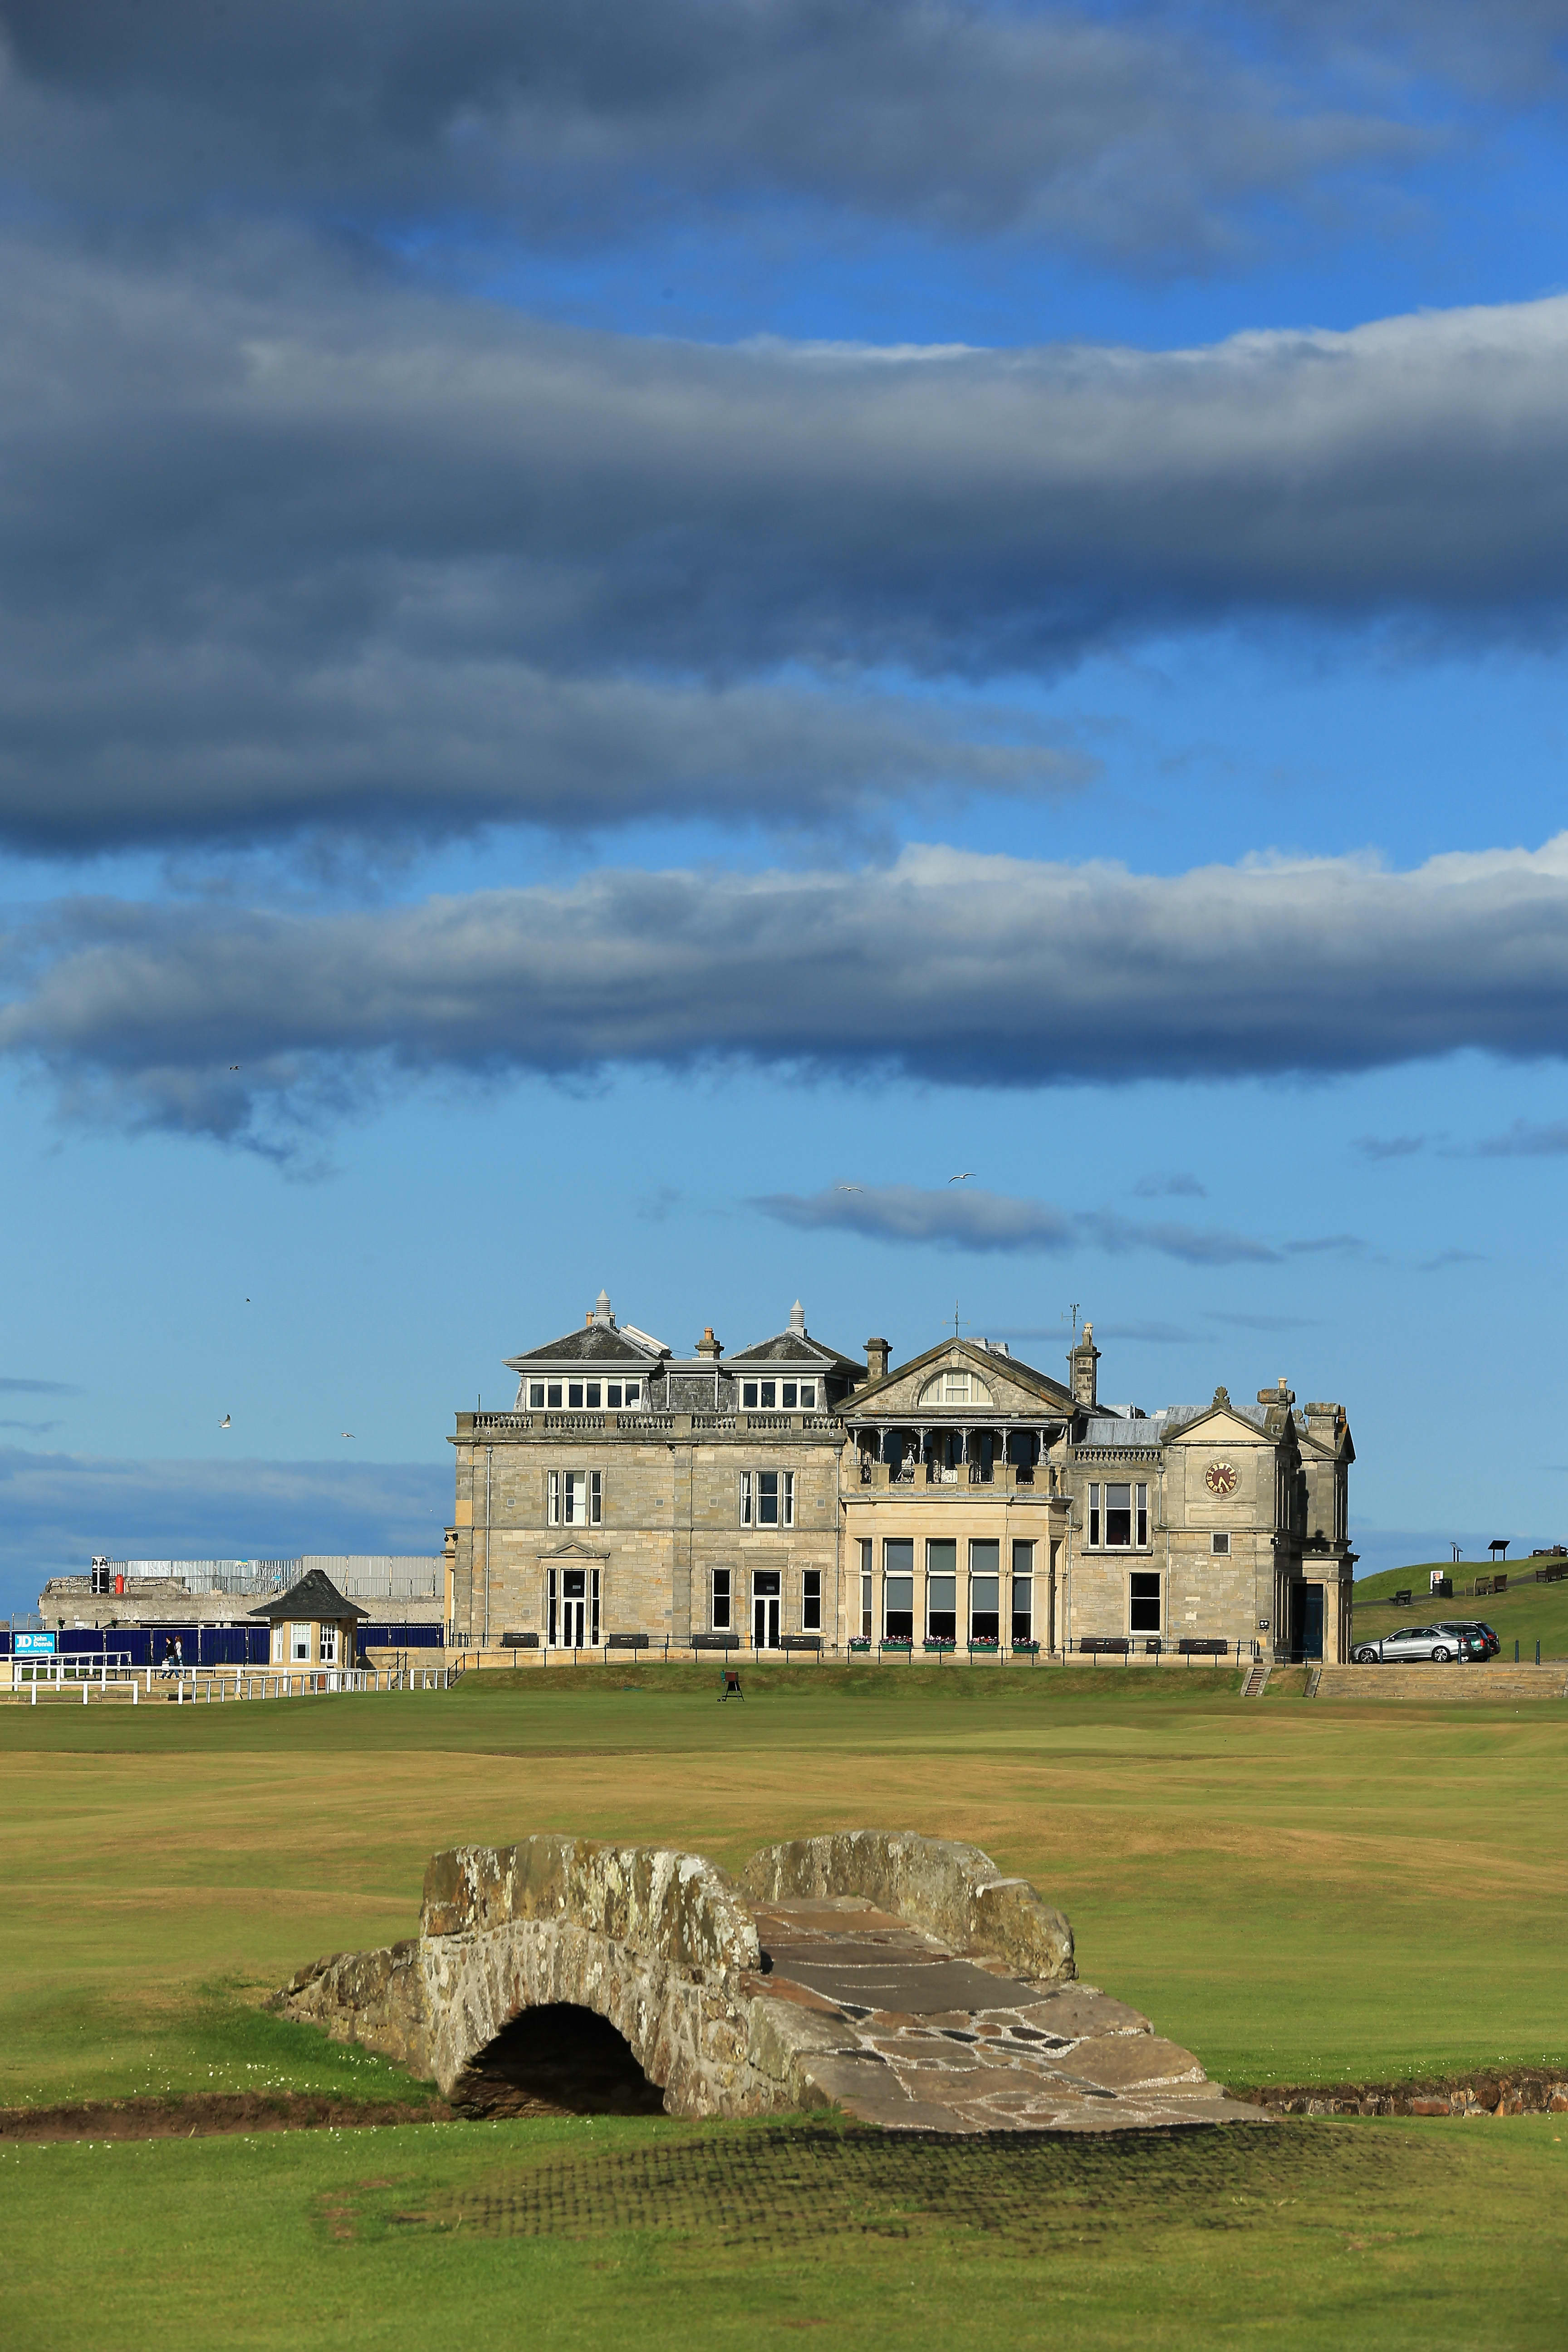 ST ANDREWS, UNITED KINGDOM - JULY 29:  The Swilcab Bridge on the par 4, 18th hole 'Tom Morris' on the Old Course at St Andrews venue for The Open Championship in 2015, on July 29, 2014 in St Andrews, Scotland.  (Photo by David Cannon/Getty Images)